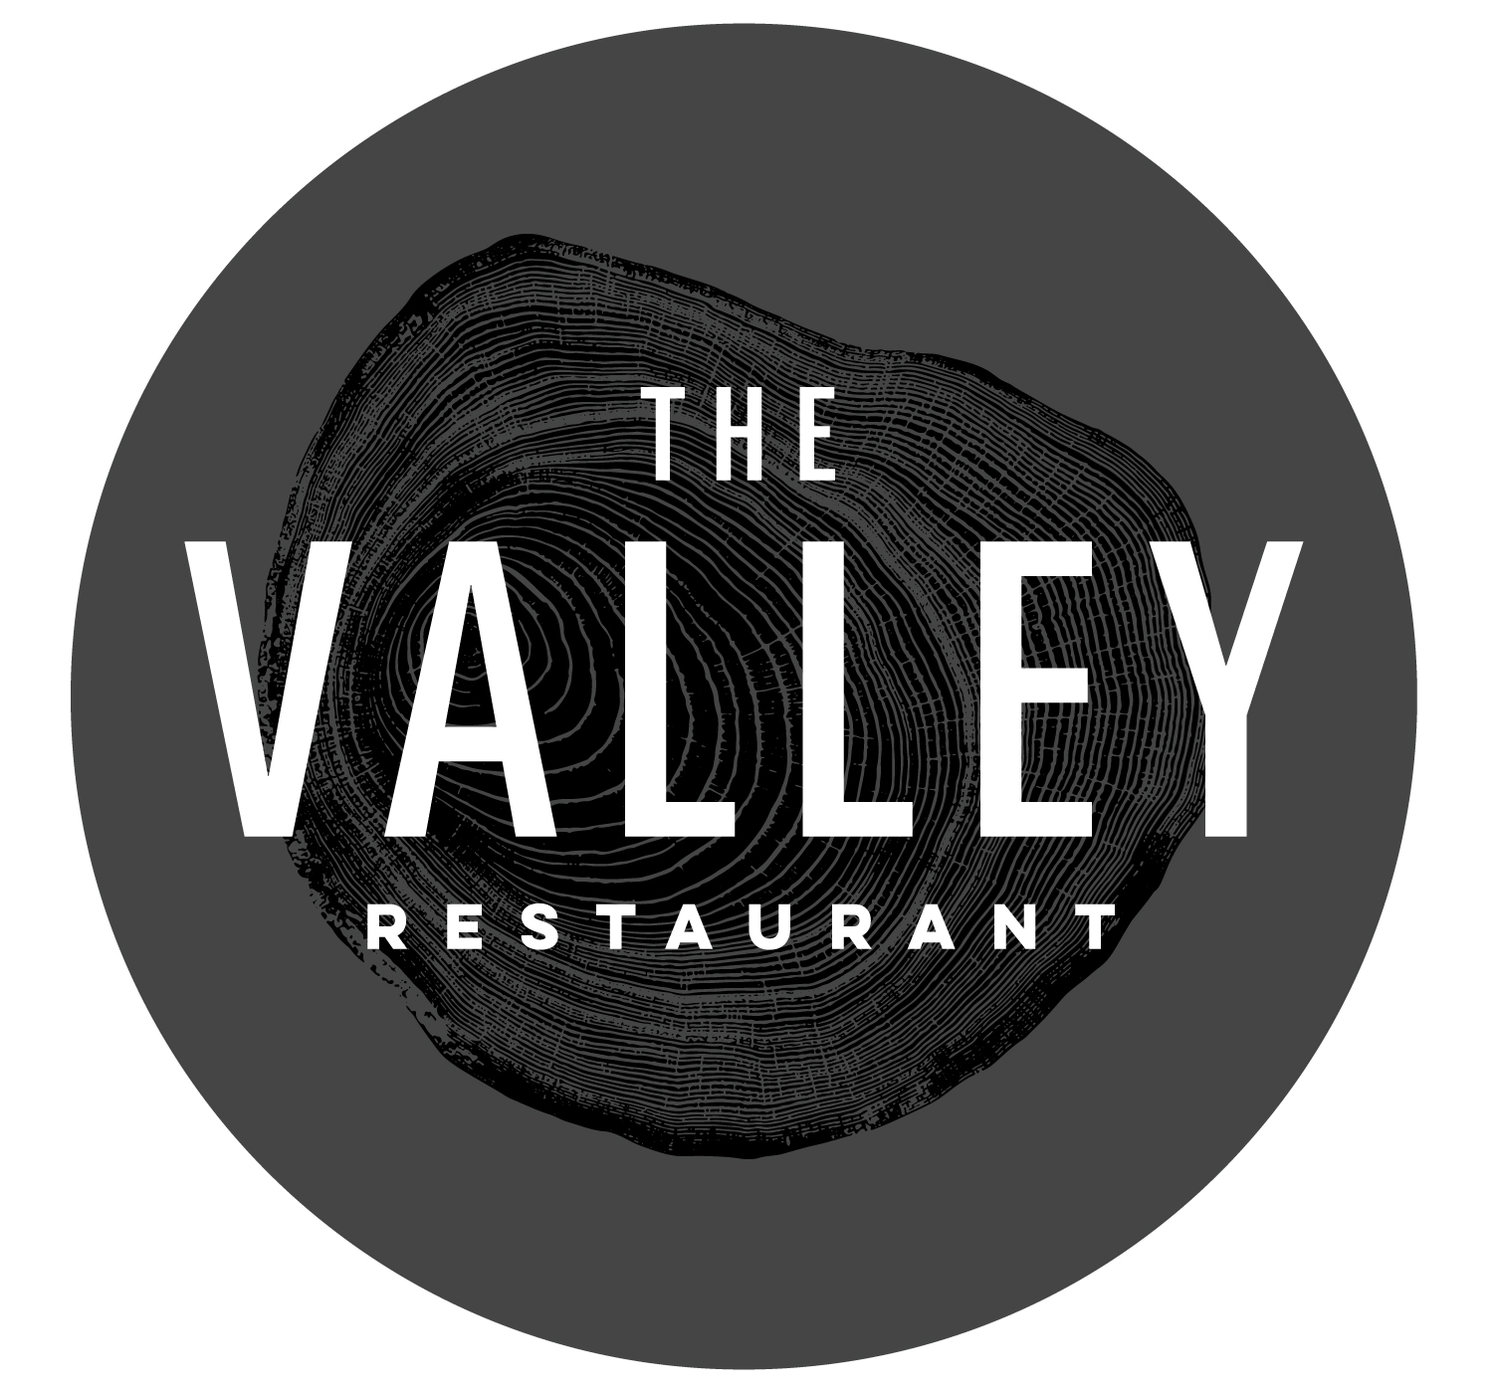 The Valley Restaurant